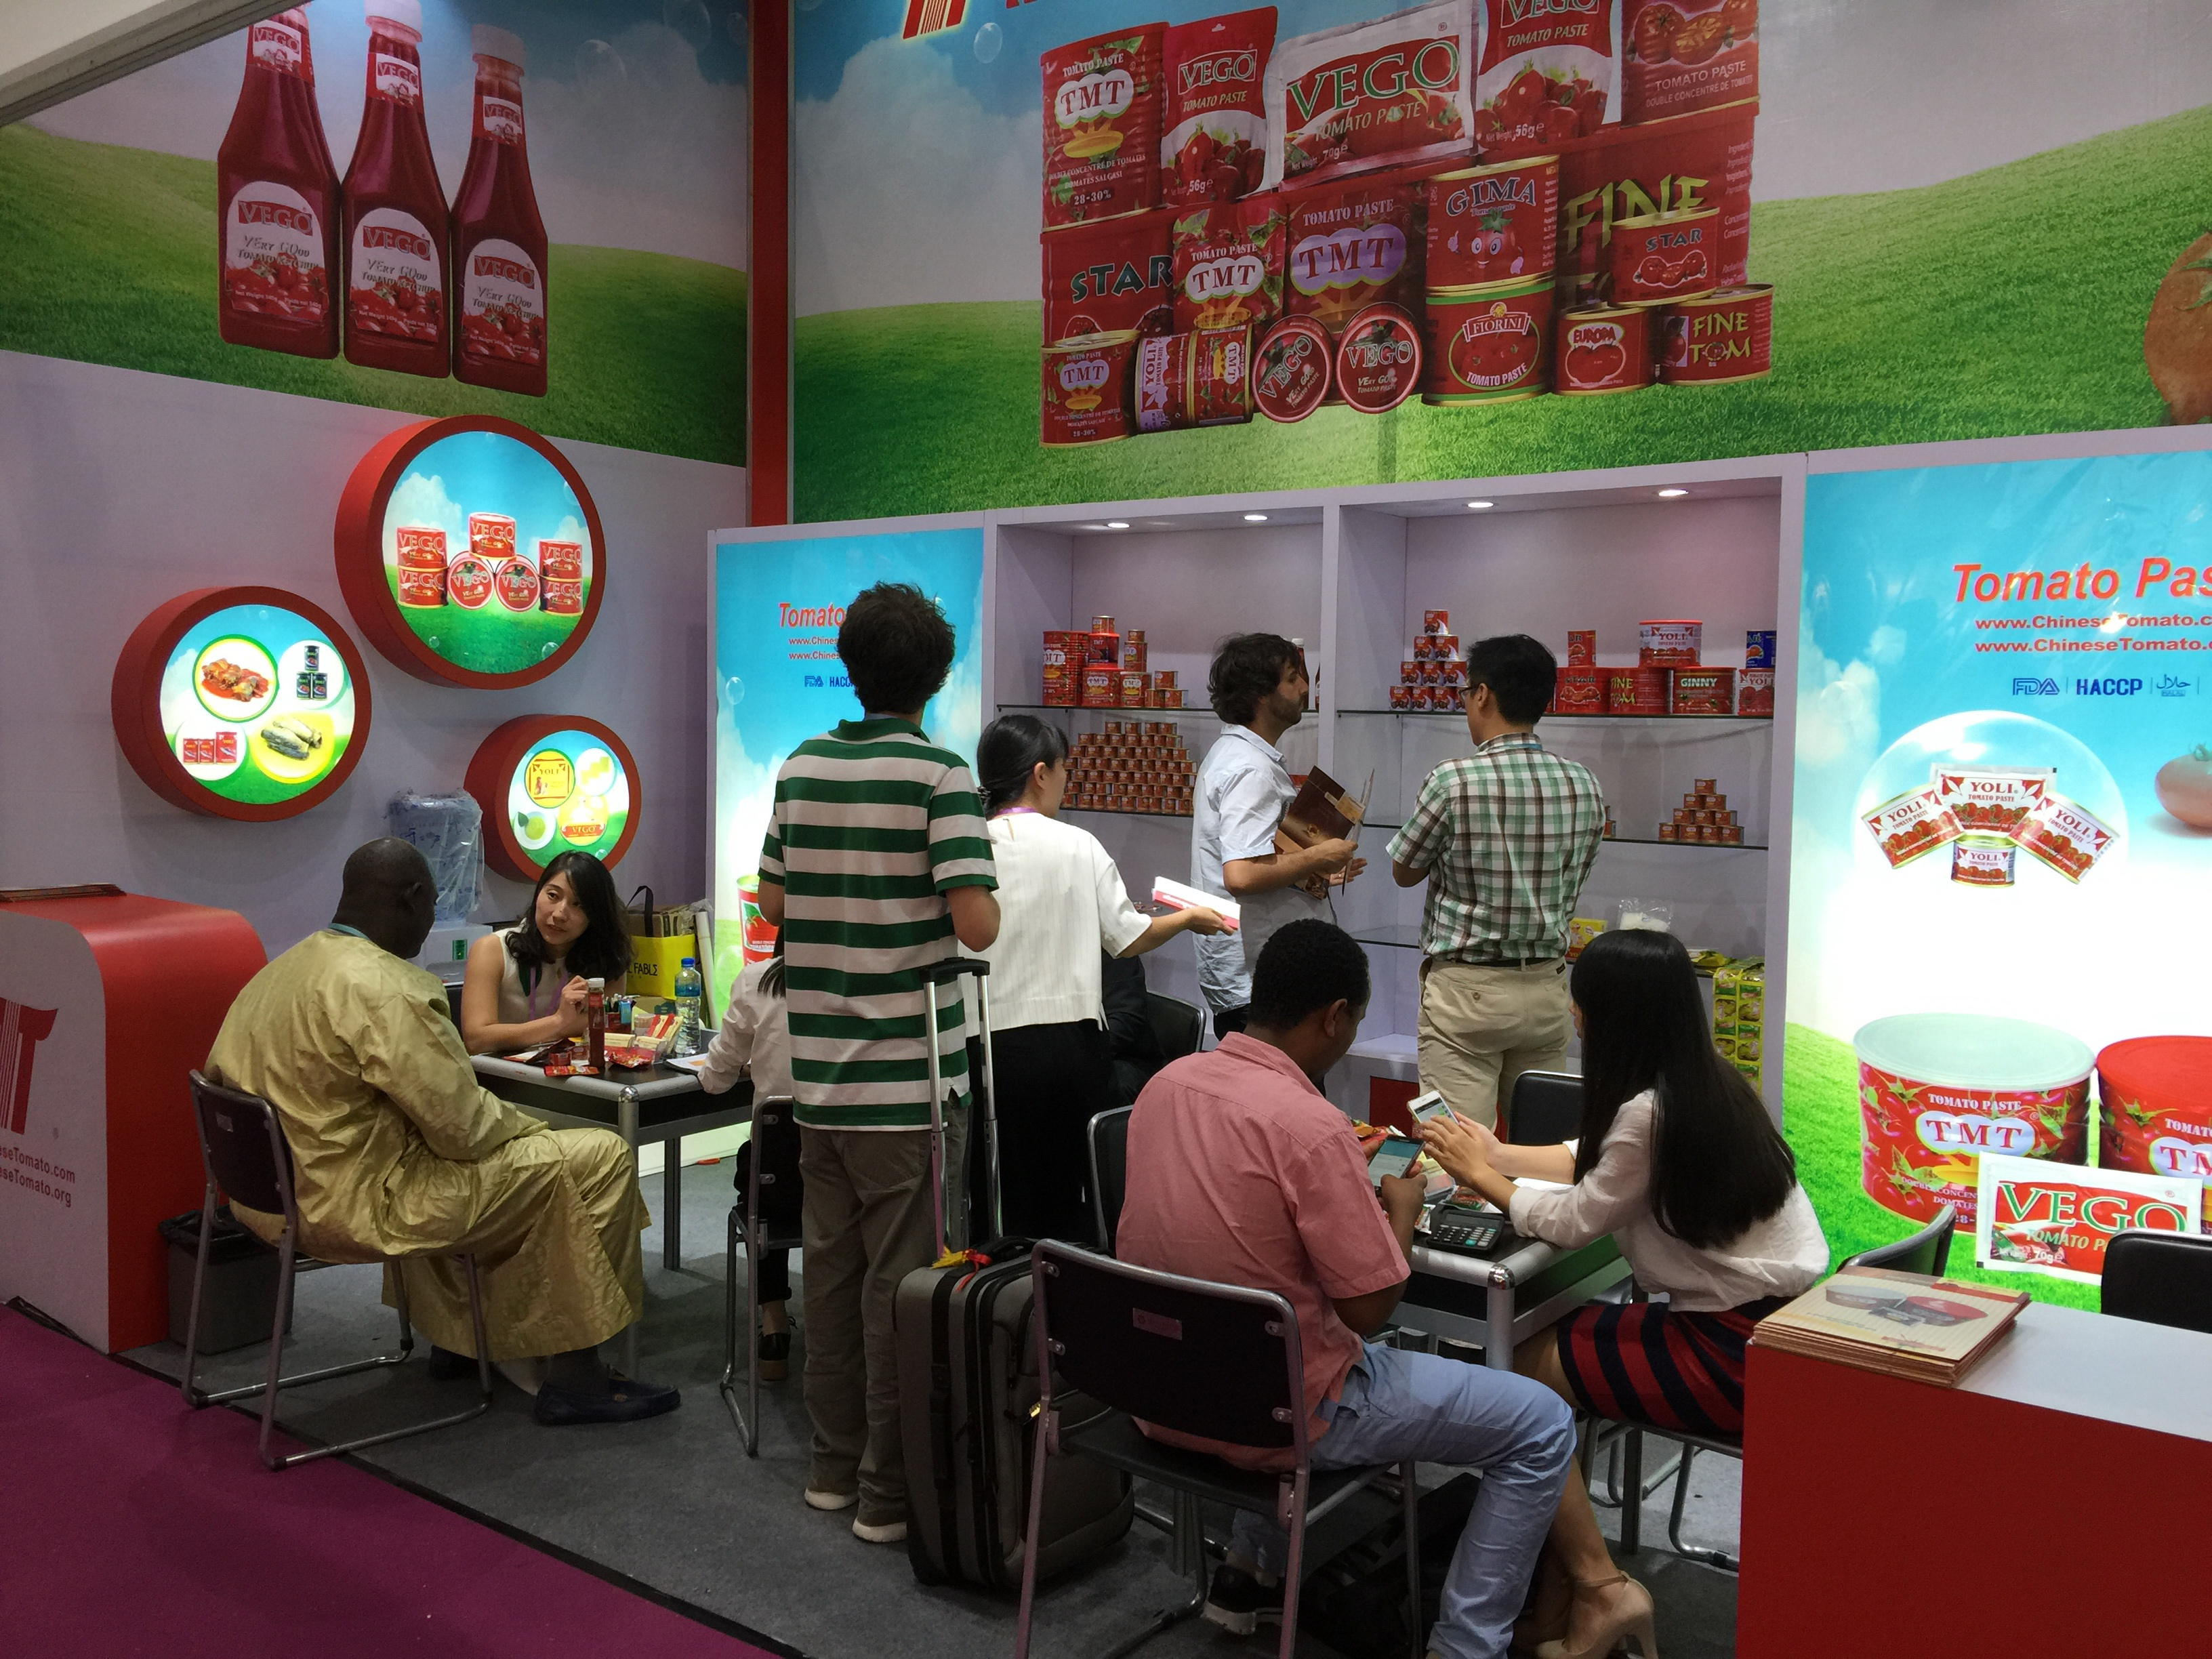 tomato paste trade fair gulfood